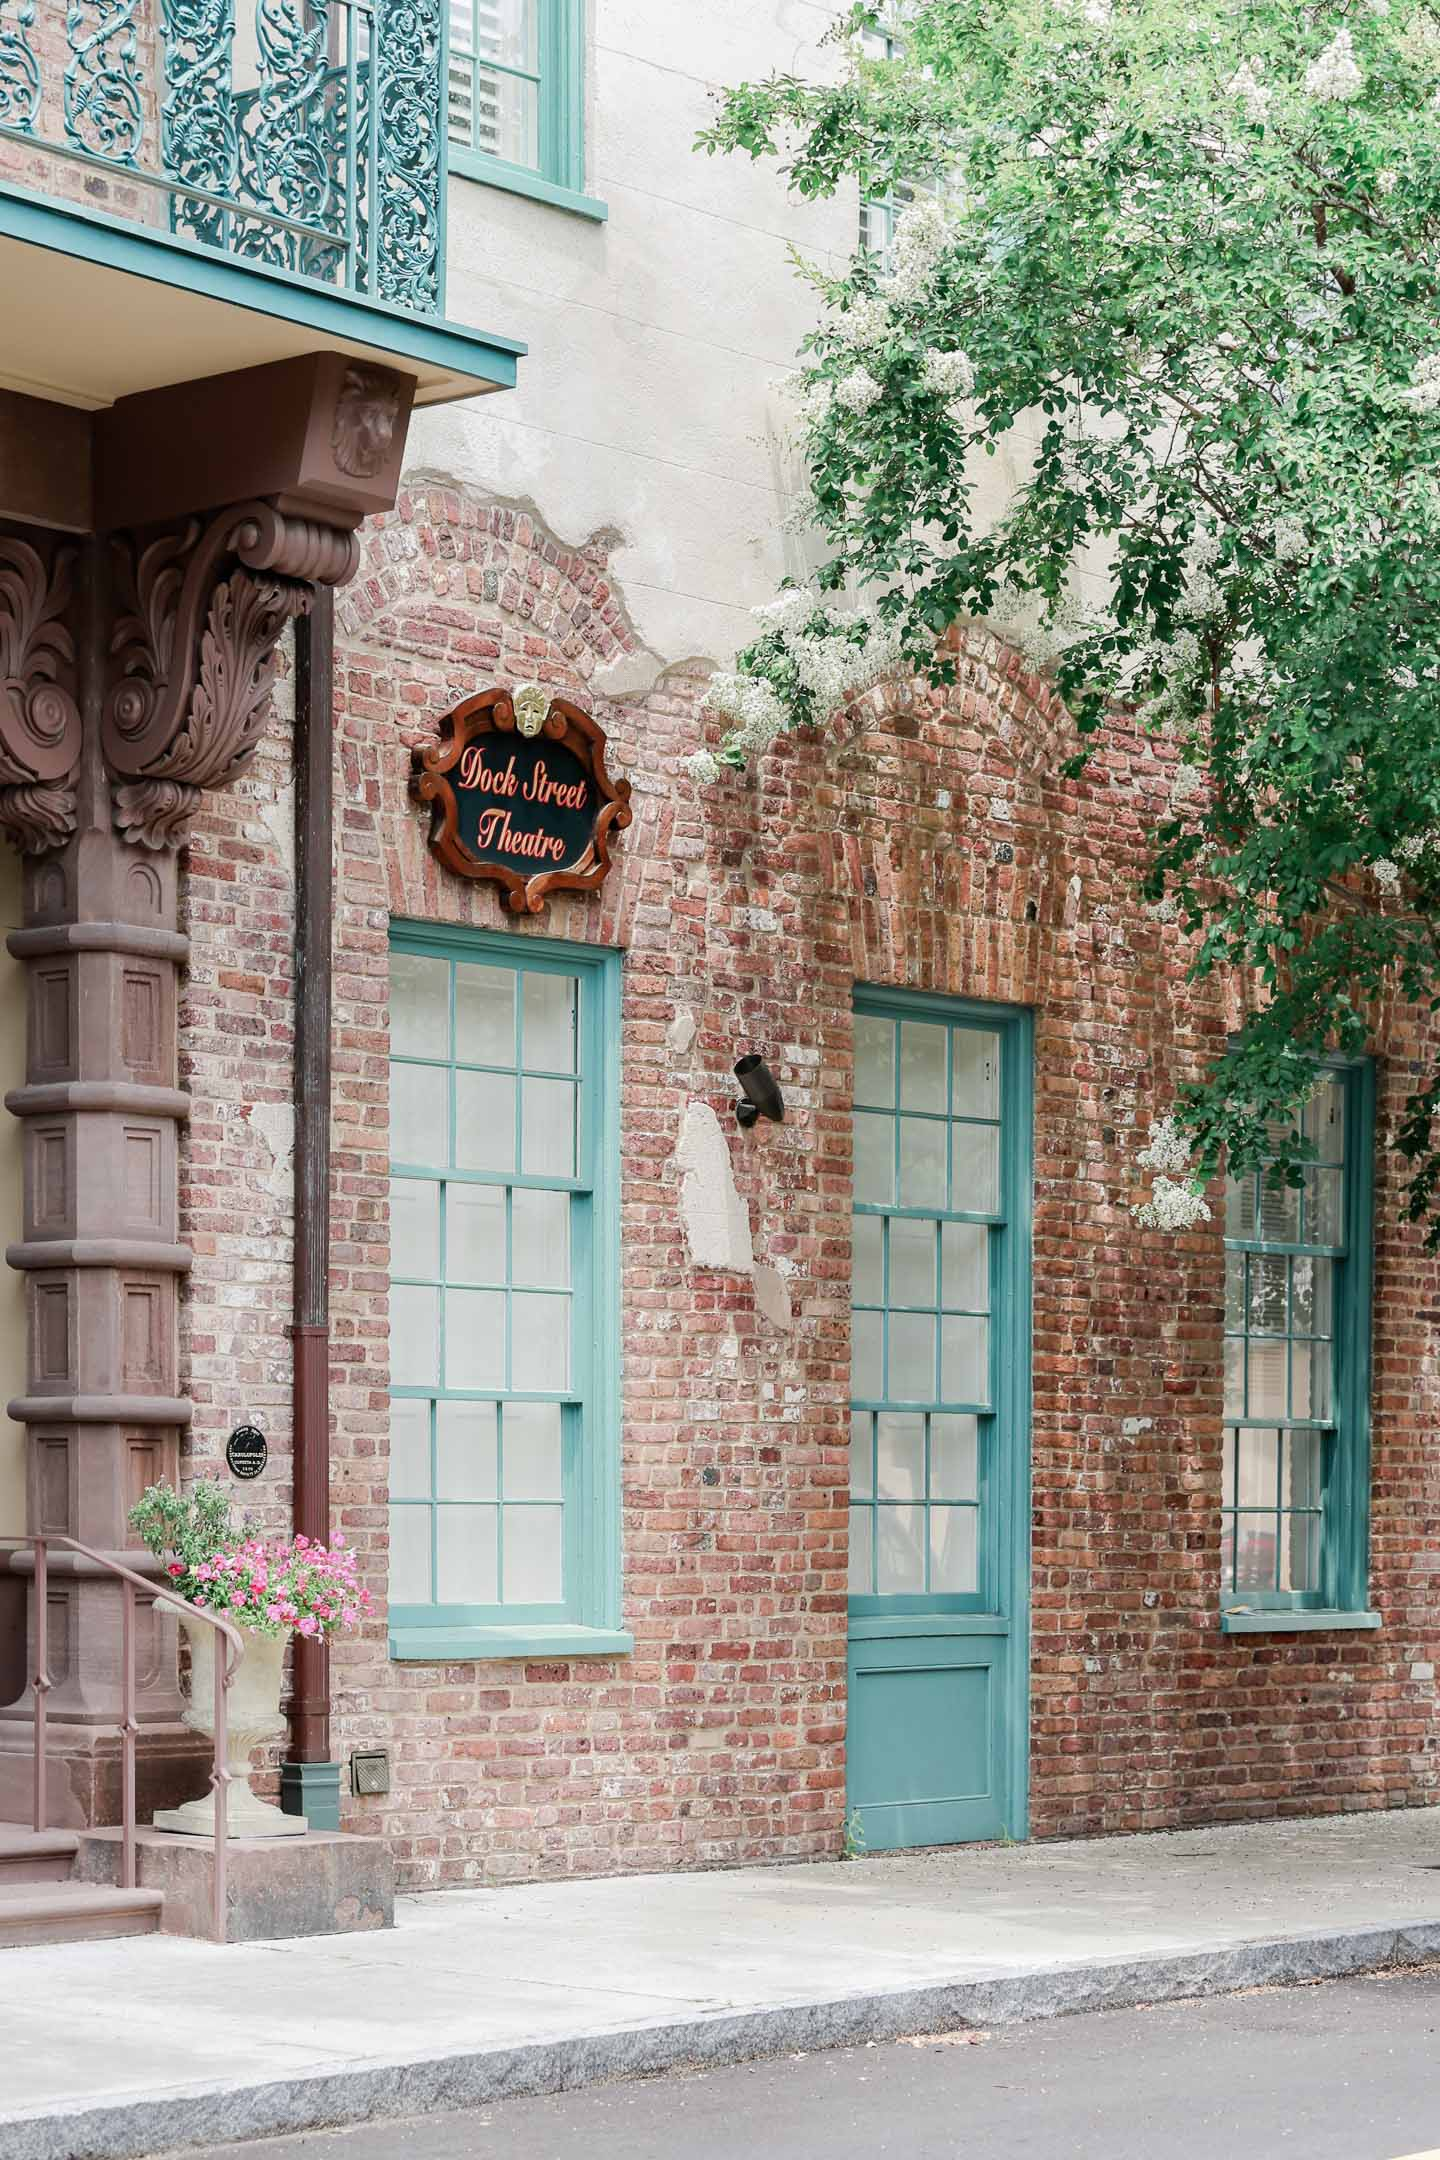 The Dock Street Theatre in Charleston is a brick building with turquoise windows and doors.